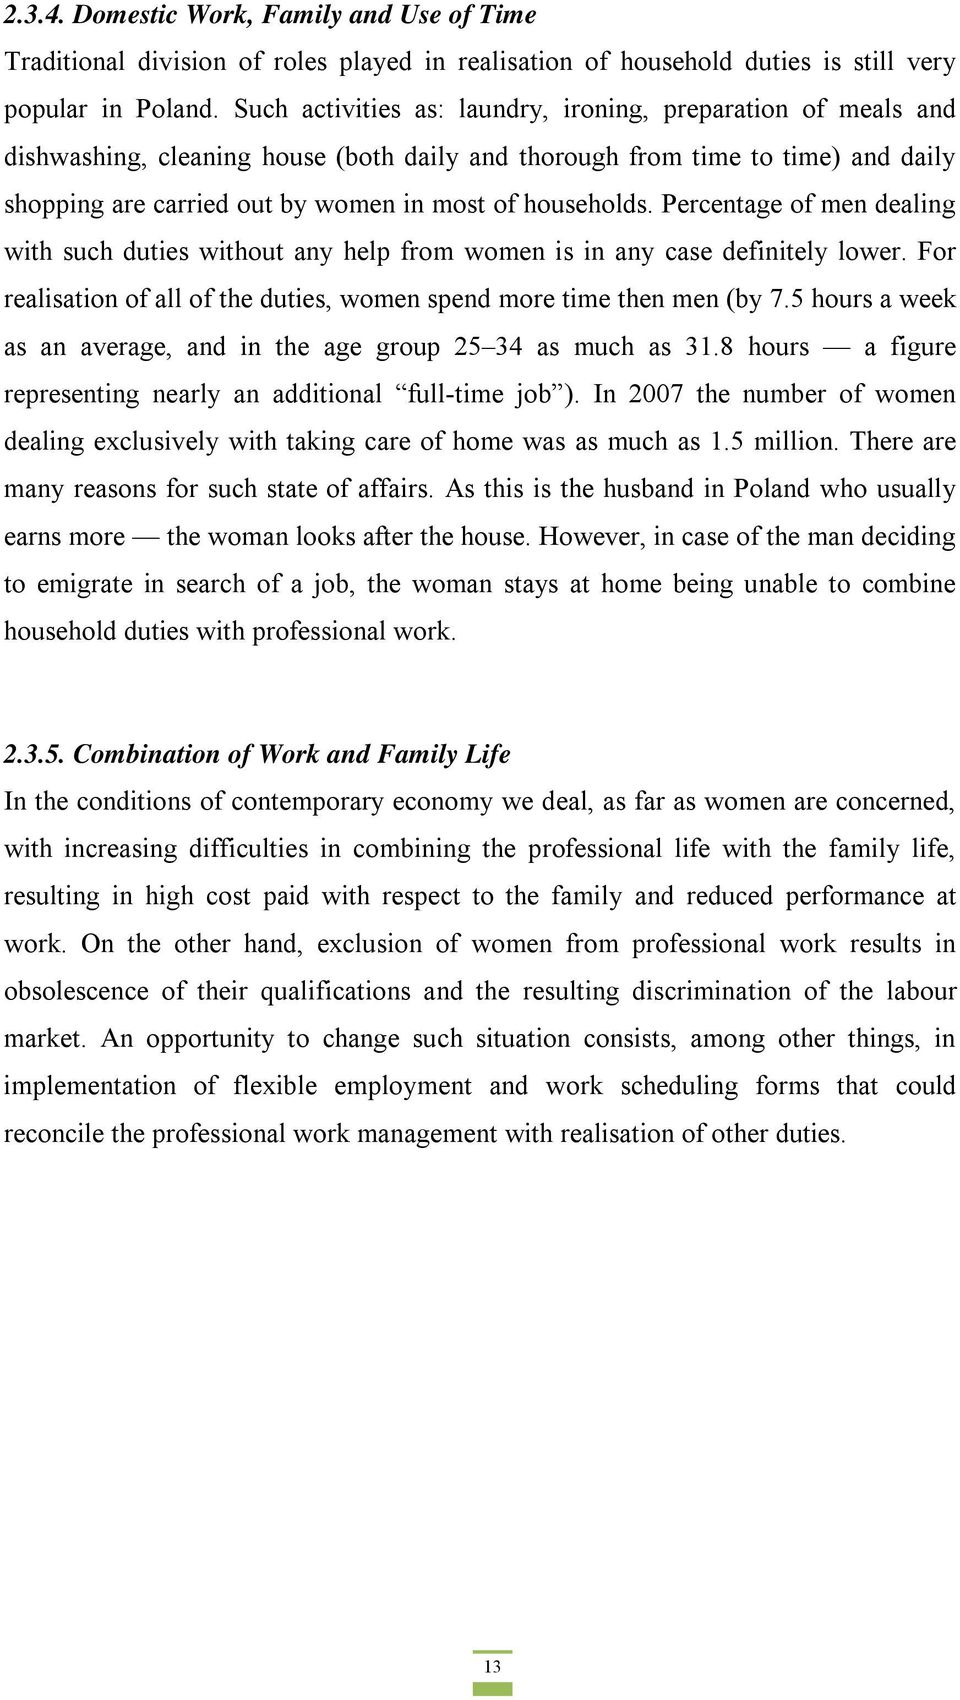 households. Percentage of men dealing with such duties without any help from women is in any case definitely lower. For realisation of all of the duties, women spend more time then men (by 7.